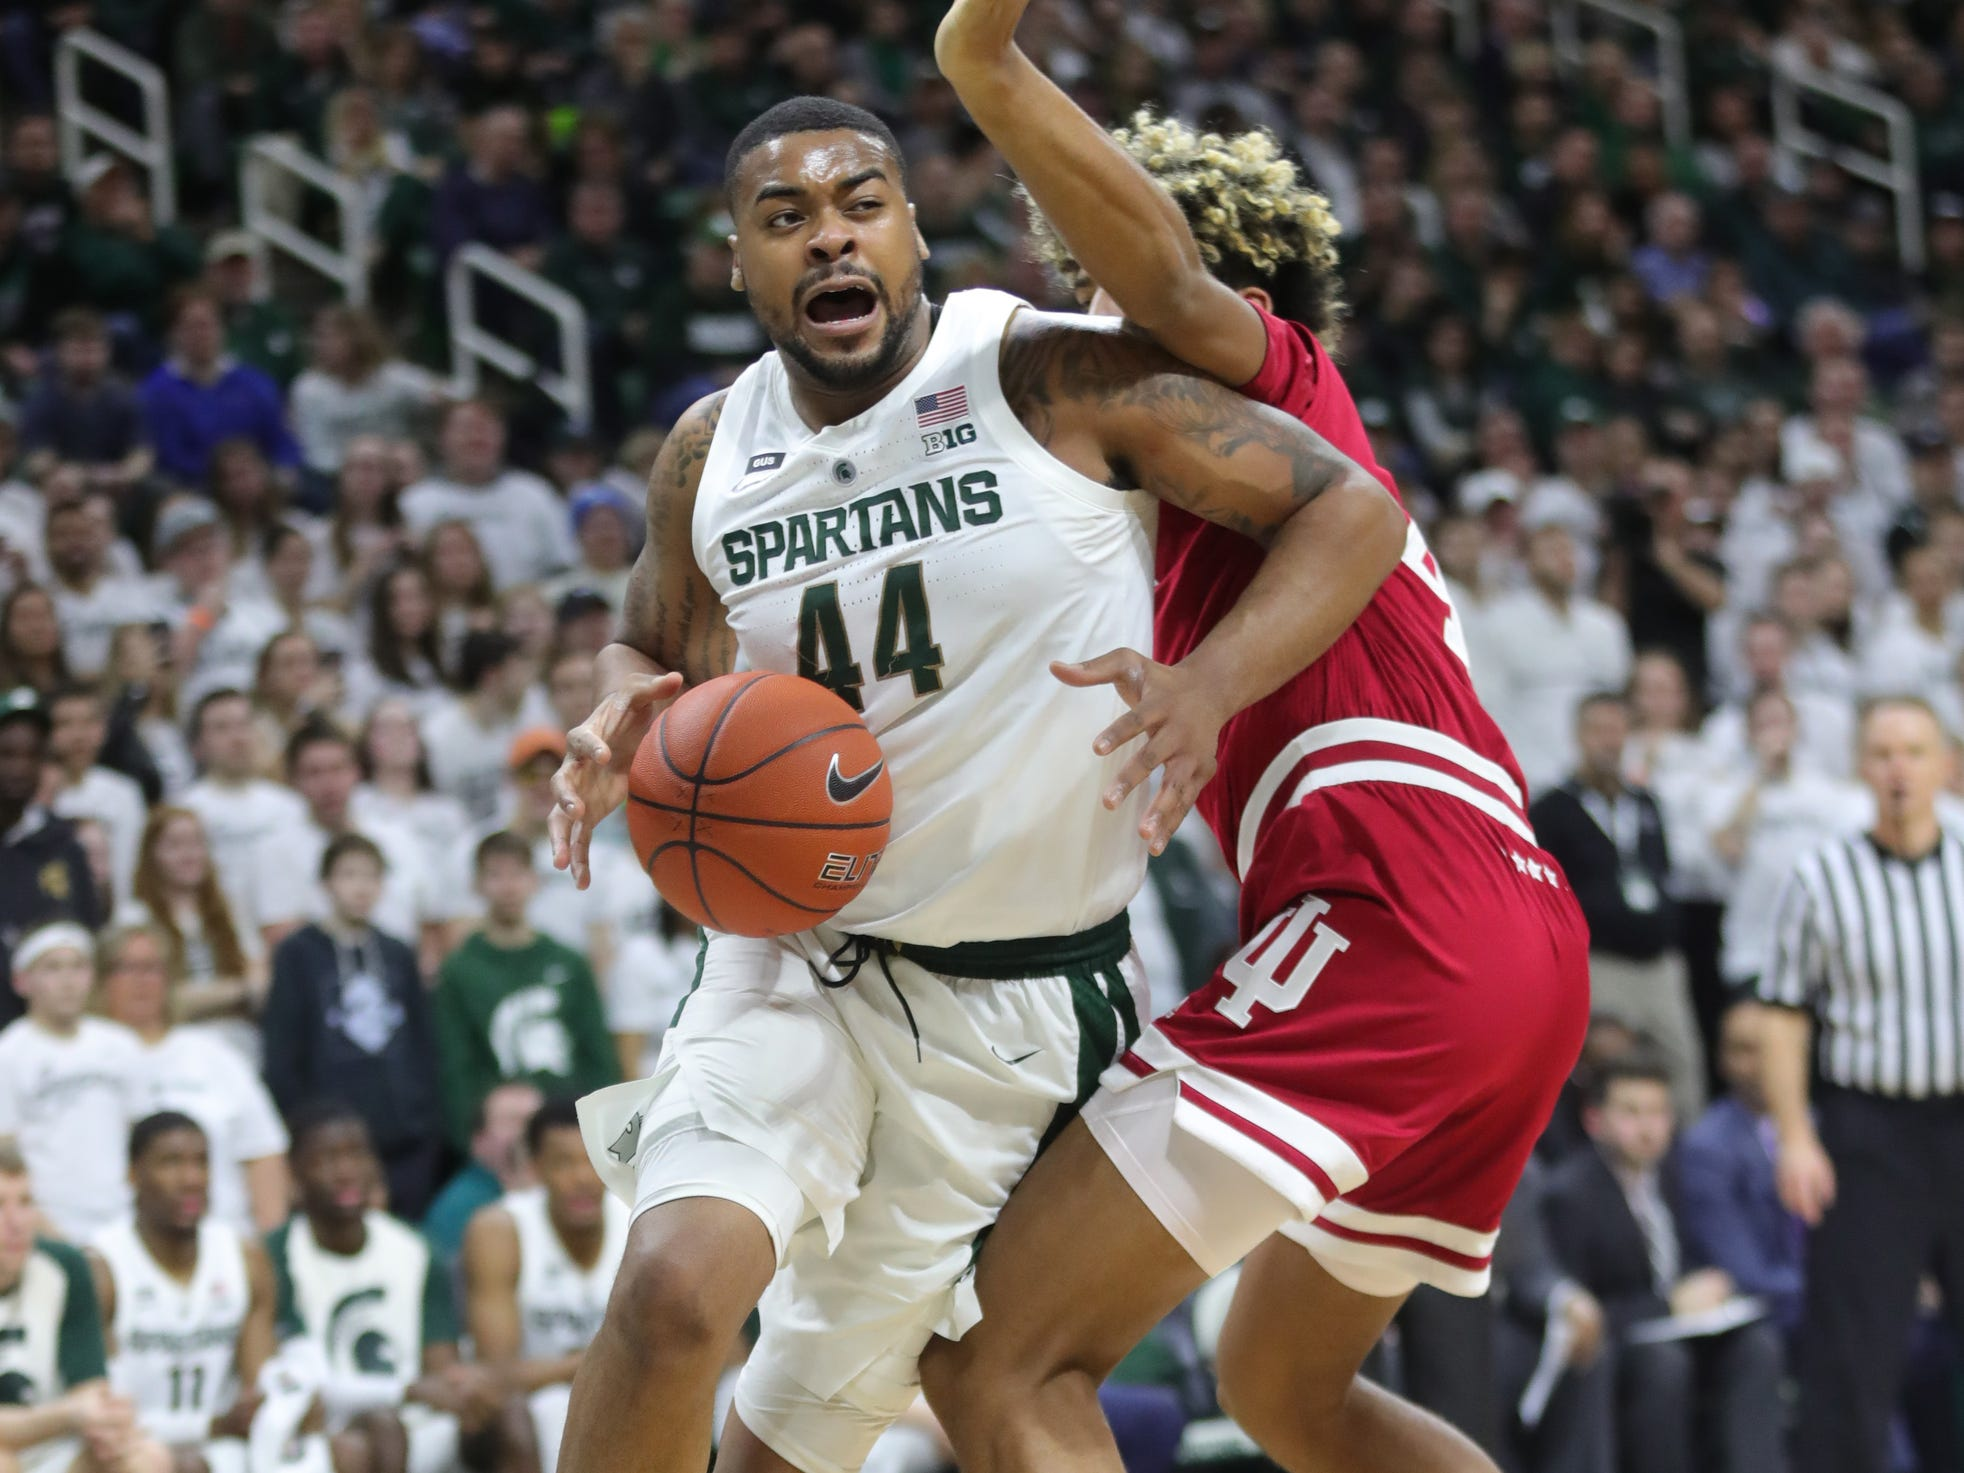 Michigan State forward Nick Ward drives against Indiana forward Jake Forrester during the second half of the 79-75 overtime loss to Indiana on Saturday, Feb. 2, 2019, in East Lansing.